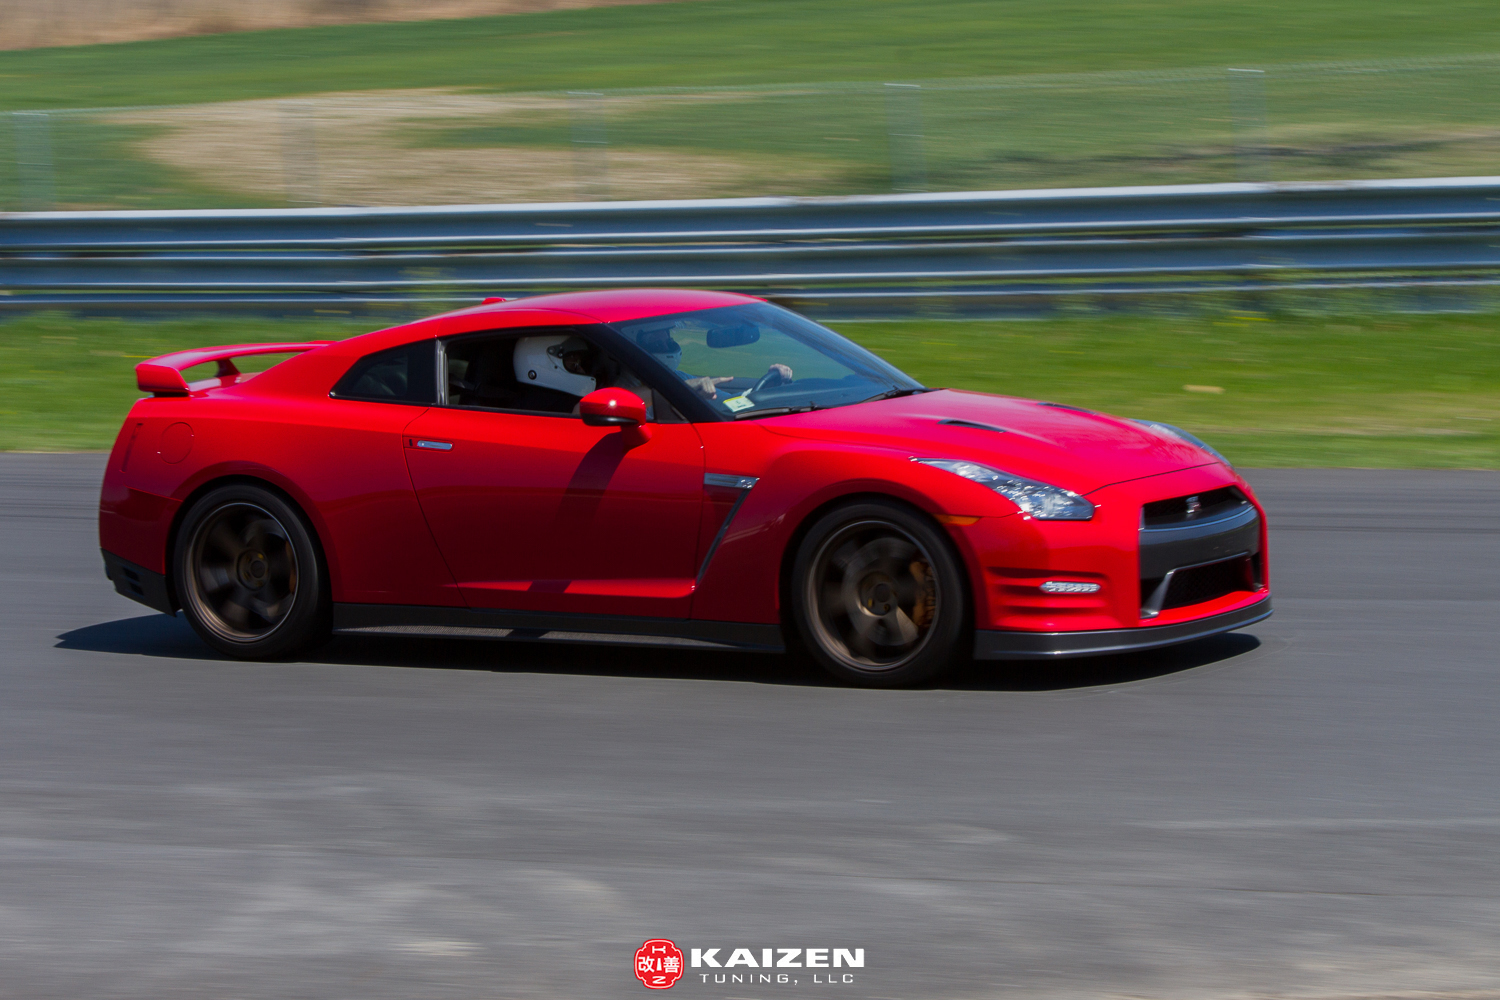 R35 GTR Tuning and Maintenance Services - Kaizen Tuning